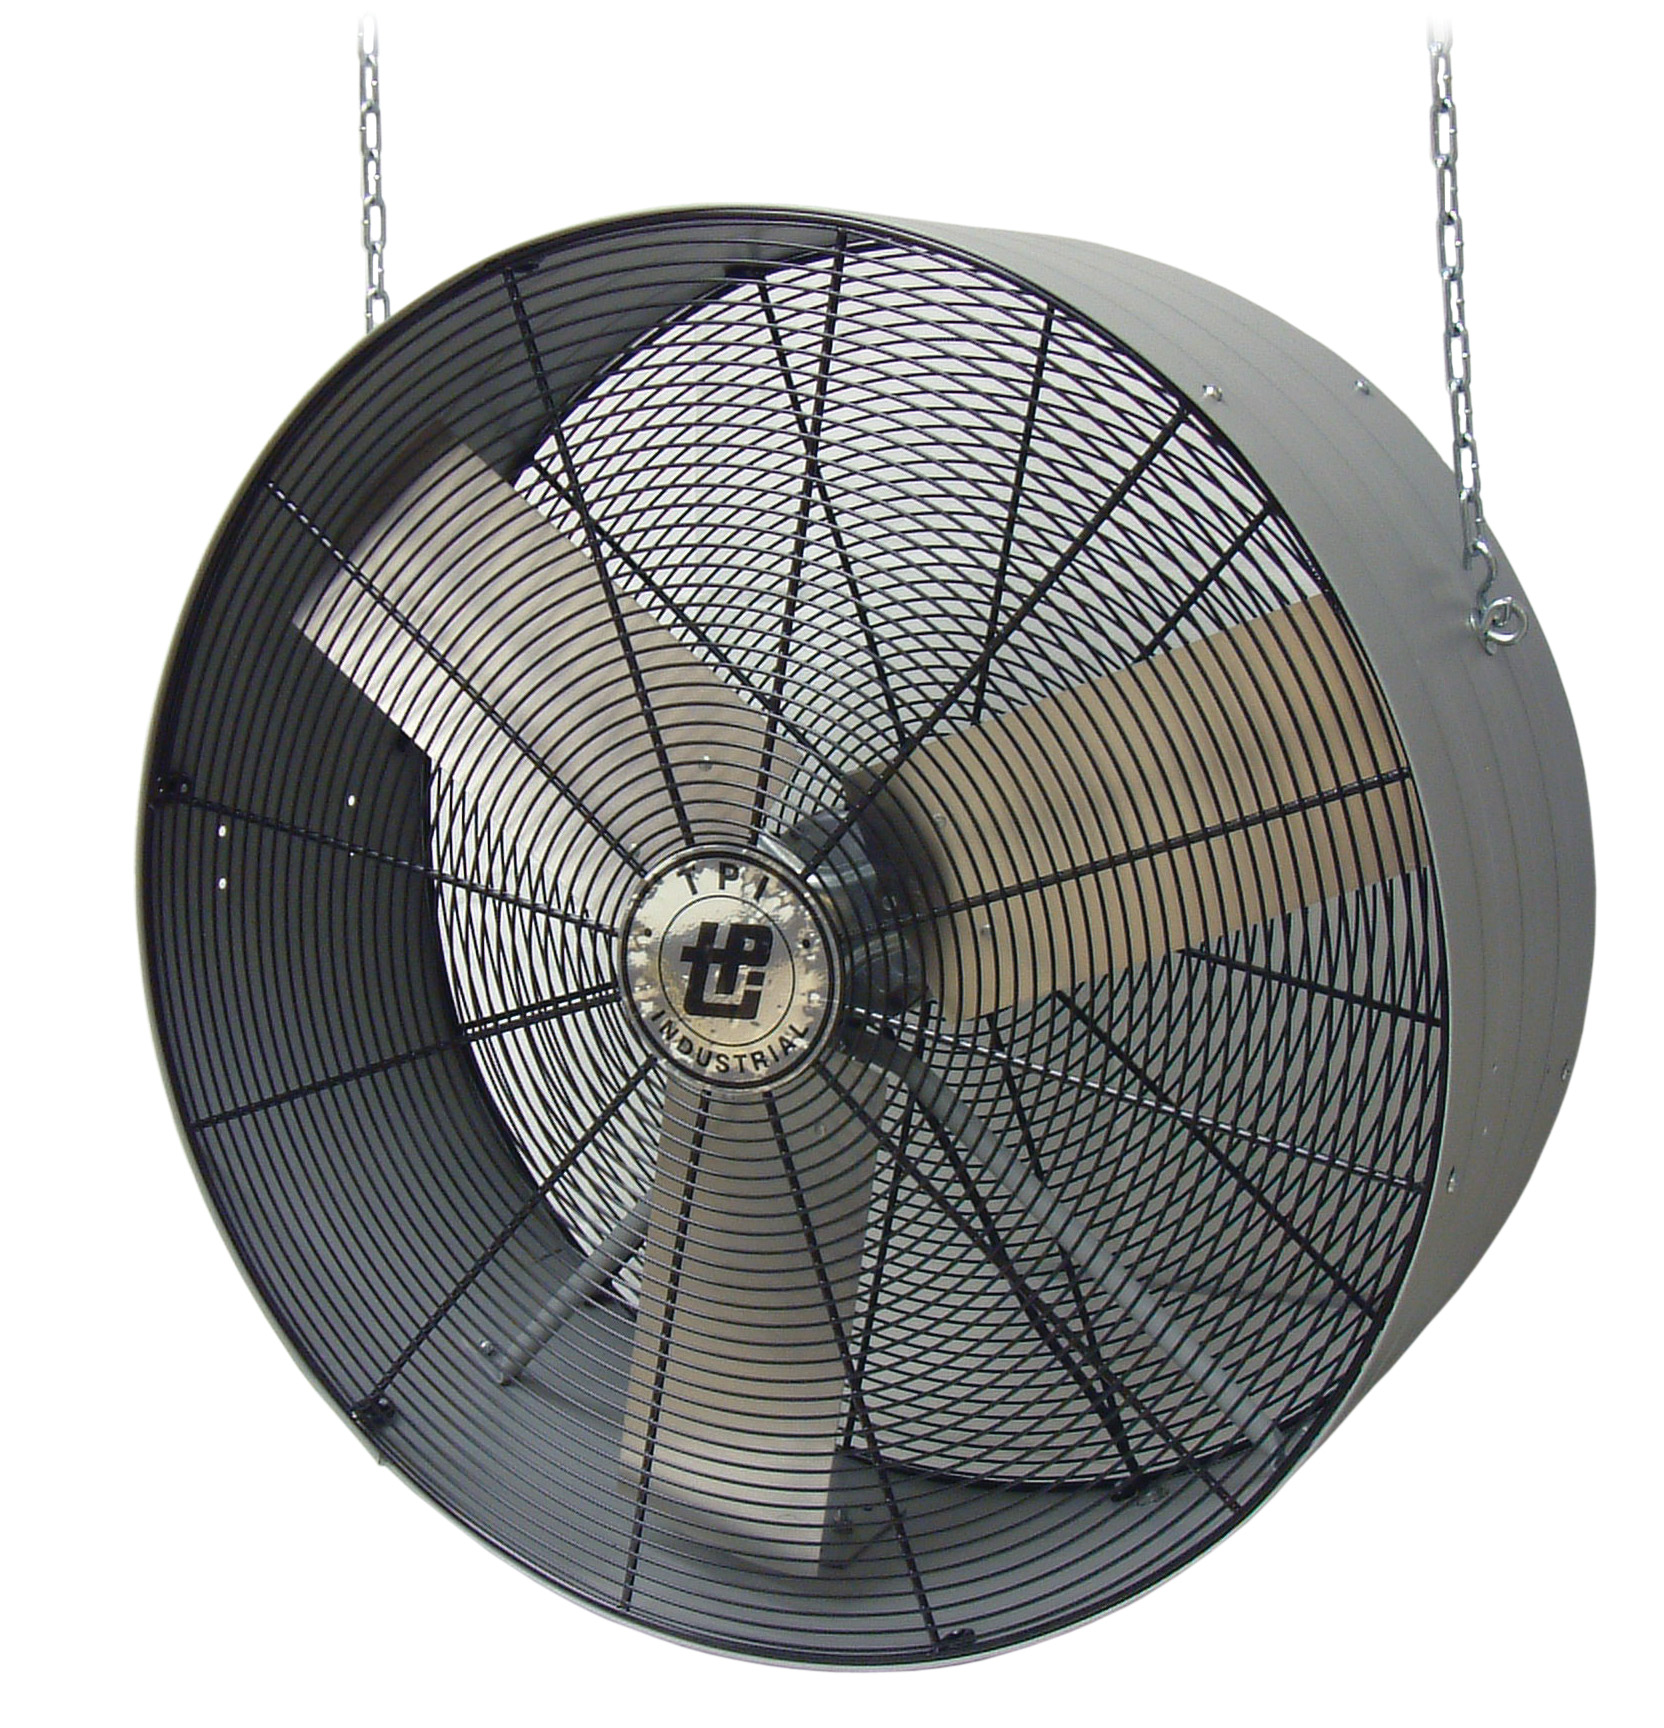 ii p lights weathered ceiling bentley collection fan control copper mounted oscillating in fans outdoor home wc wall decorators with indoor without ceilings